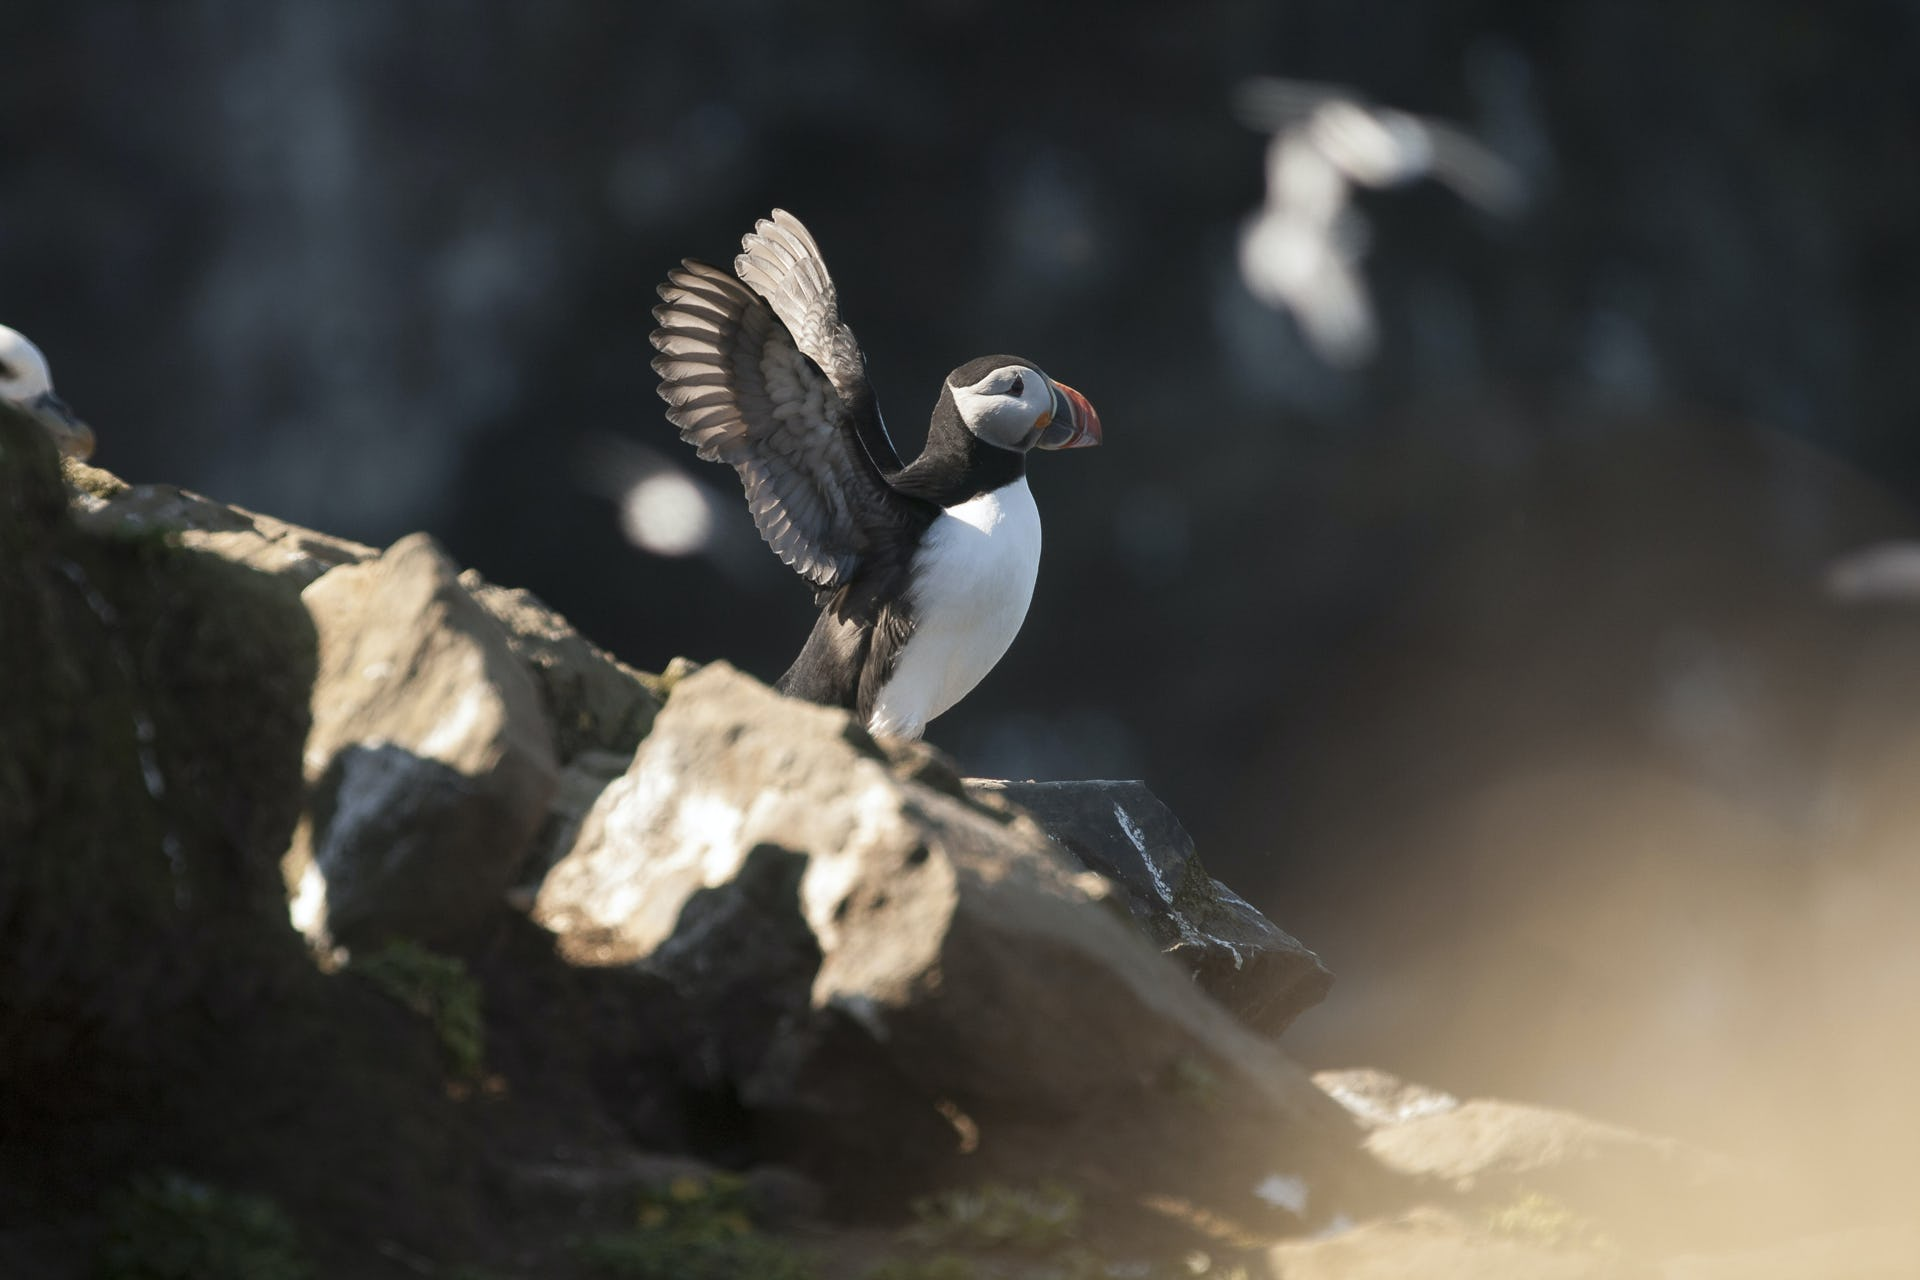 Puffins are one of the greatest attractions to see in North Iceland.